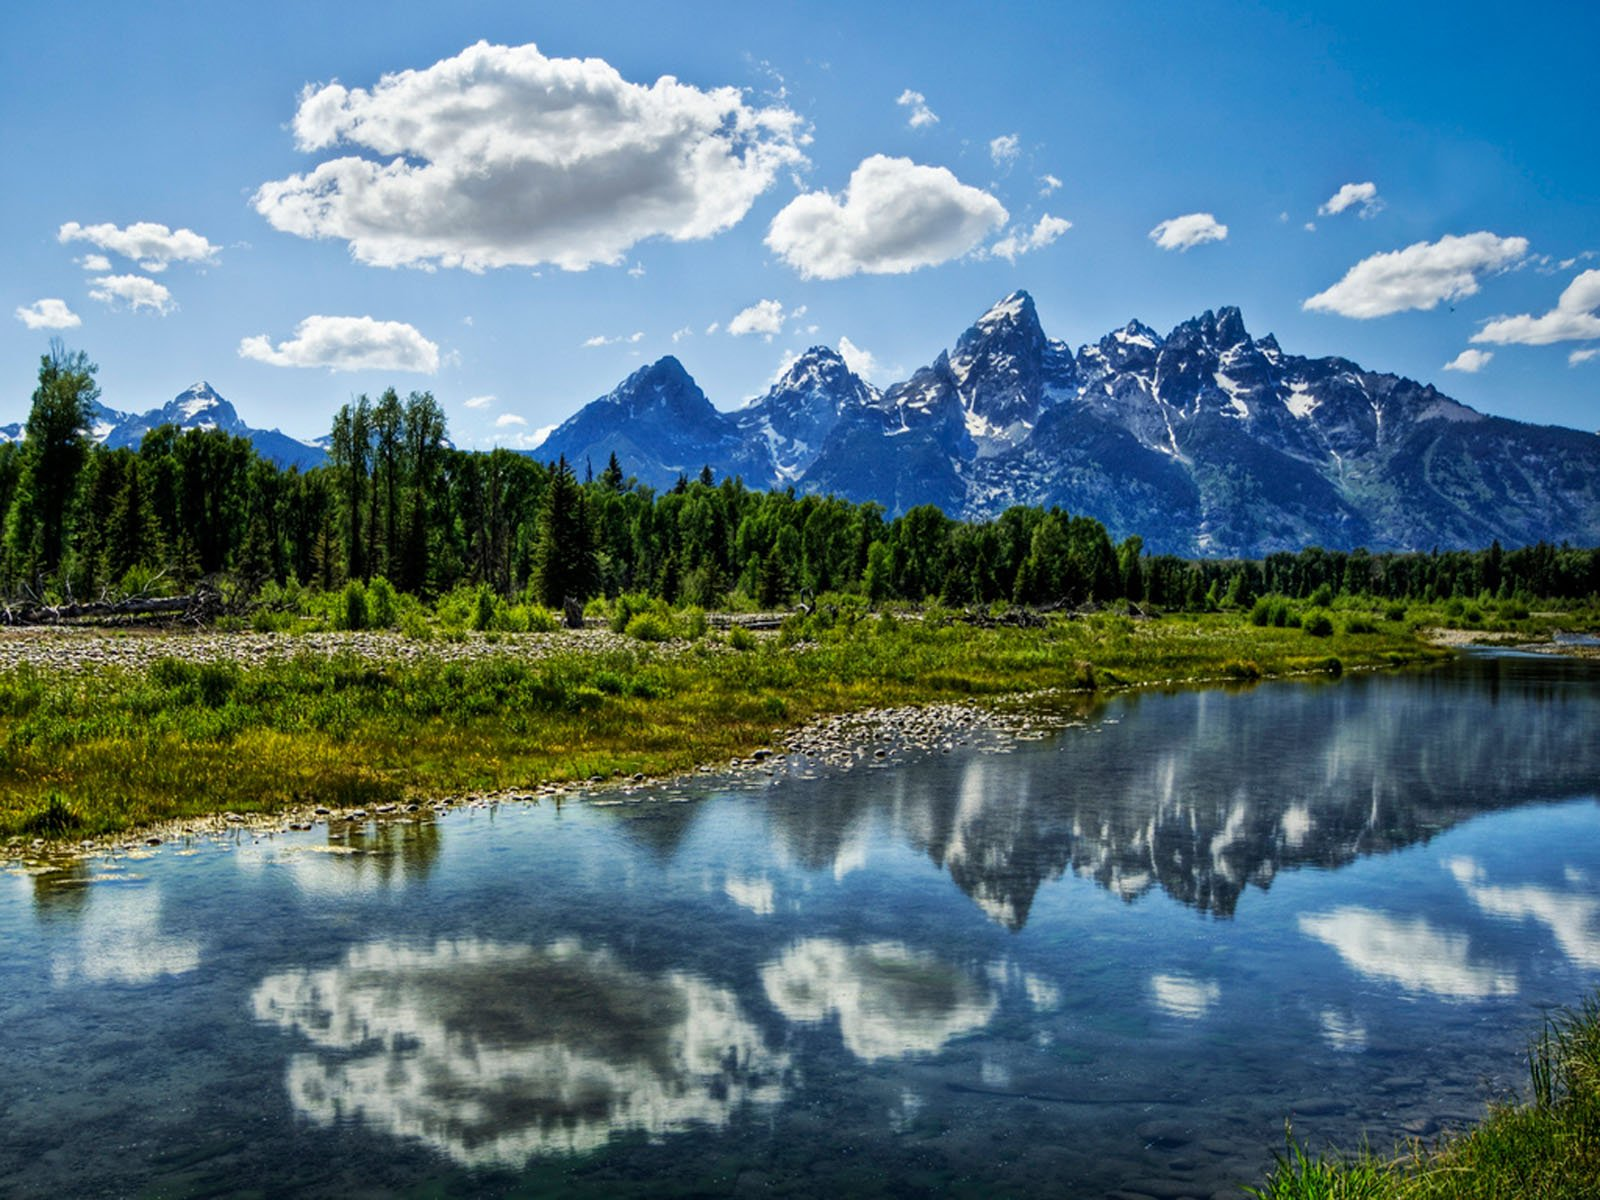 Tag Grand Teton National Park Wallpapers Backgrounds Photos Images 1600x1200